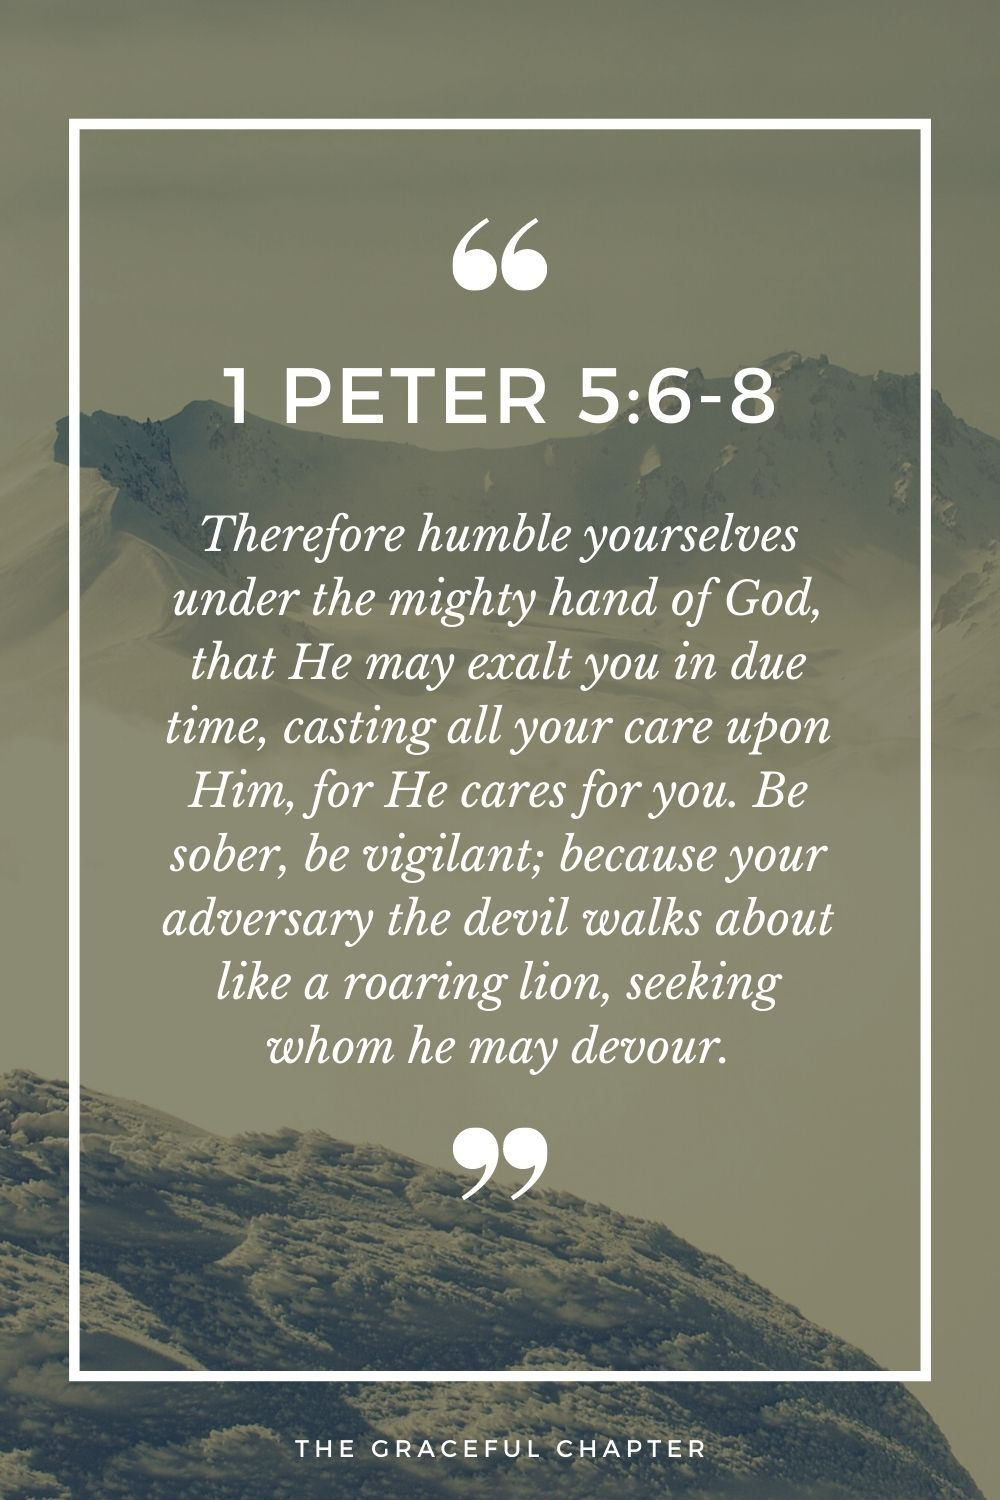 Therefore humble yourselves under the mighty hand of God, that He may exalt you in due time, casting all your care upon Him, for He cares for you. Be sober, be vigilant; because your adversary the devil walks about like a roaring lion, seeking whom he may devour. 1 Peter 5:6-8